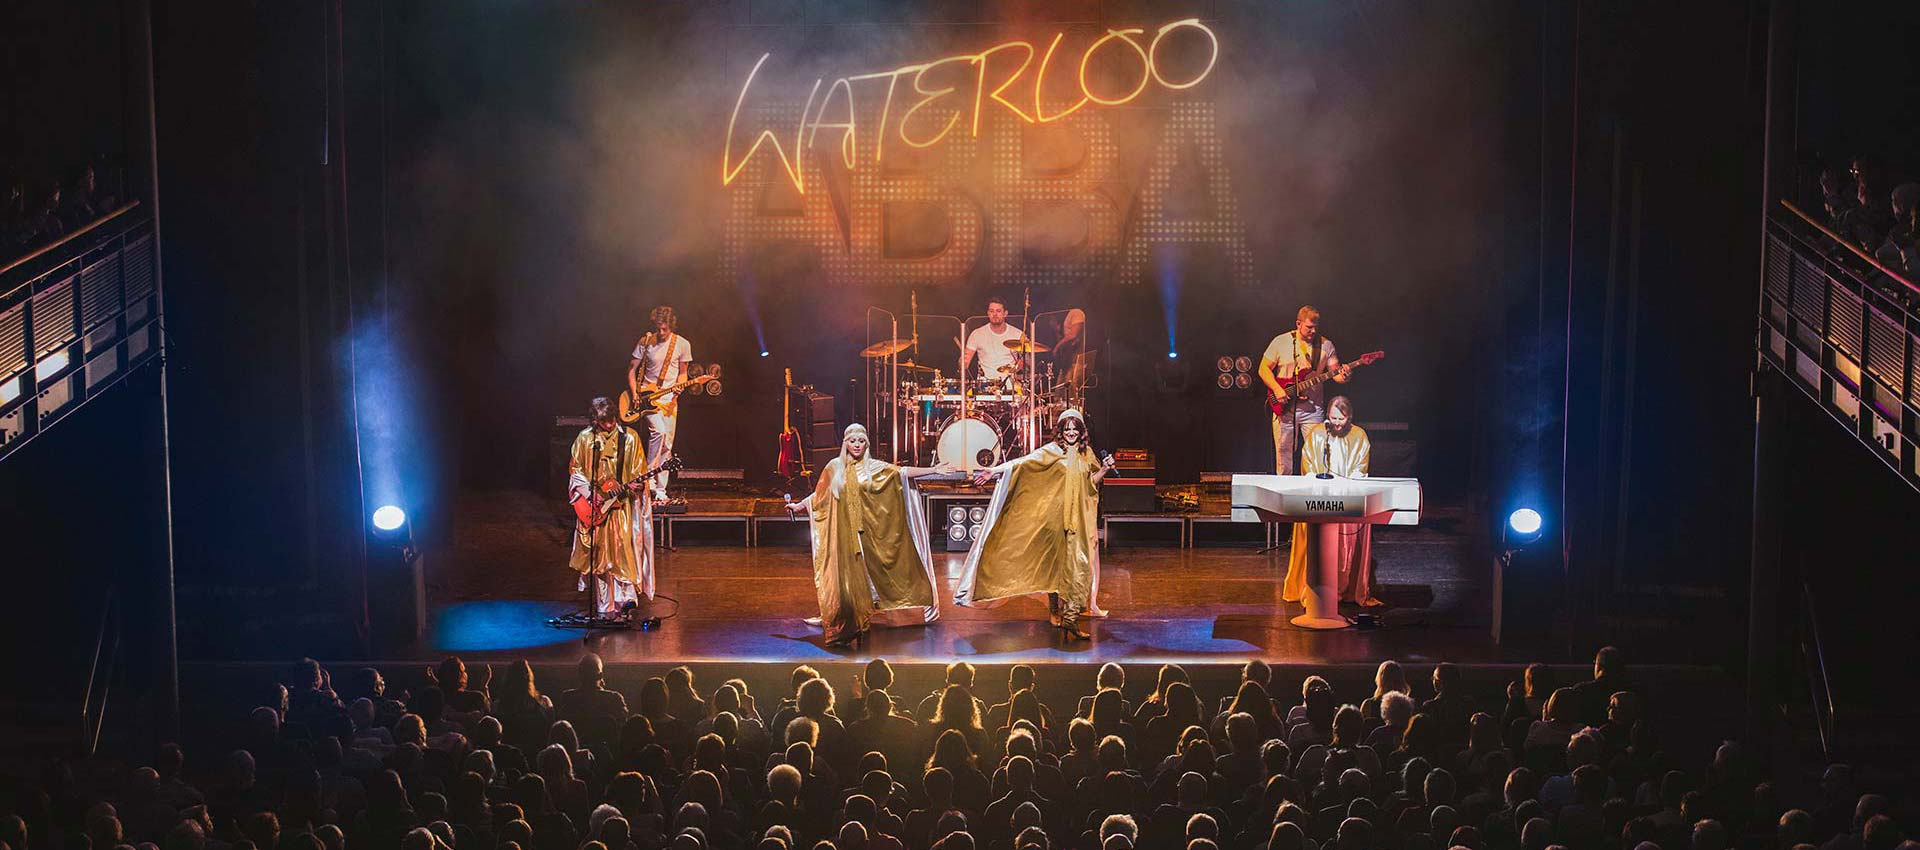 waterloo-abba